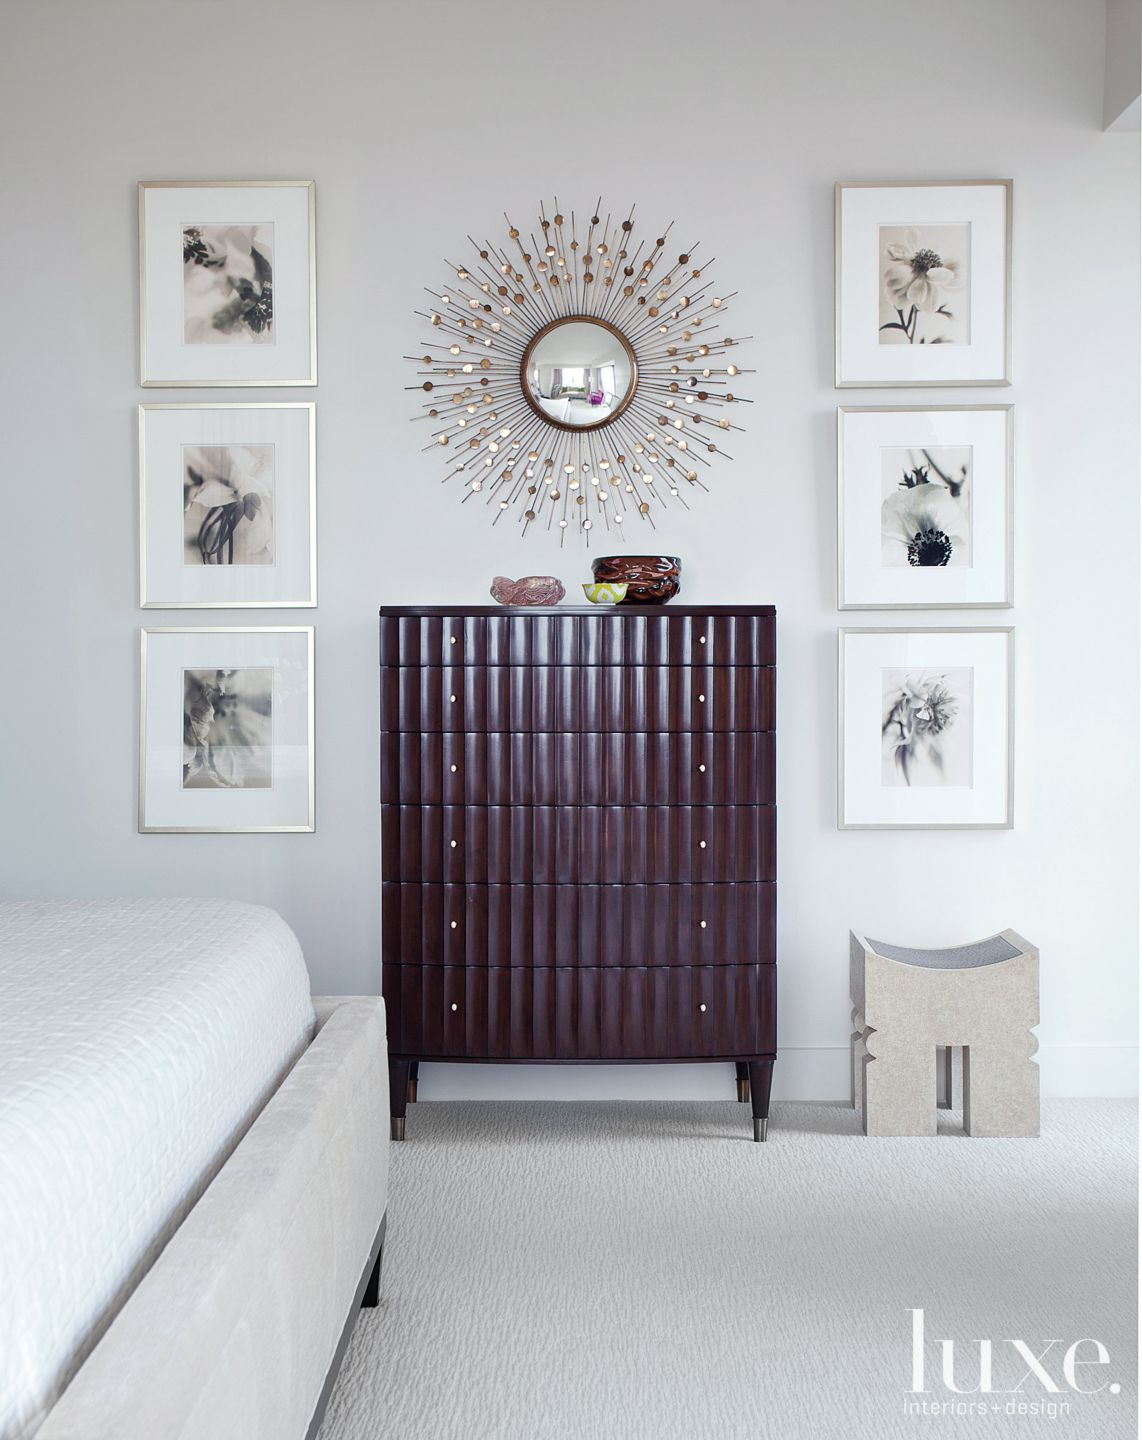 Contemporary White Master Bedroom Vignette with Gallery Wall